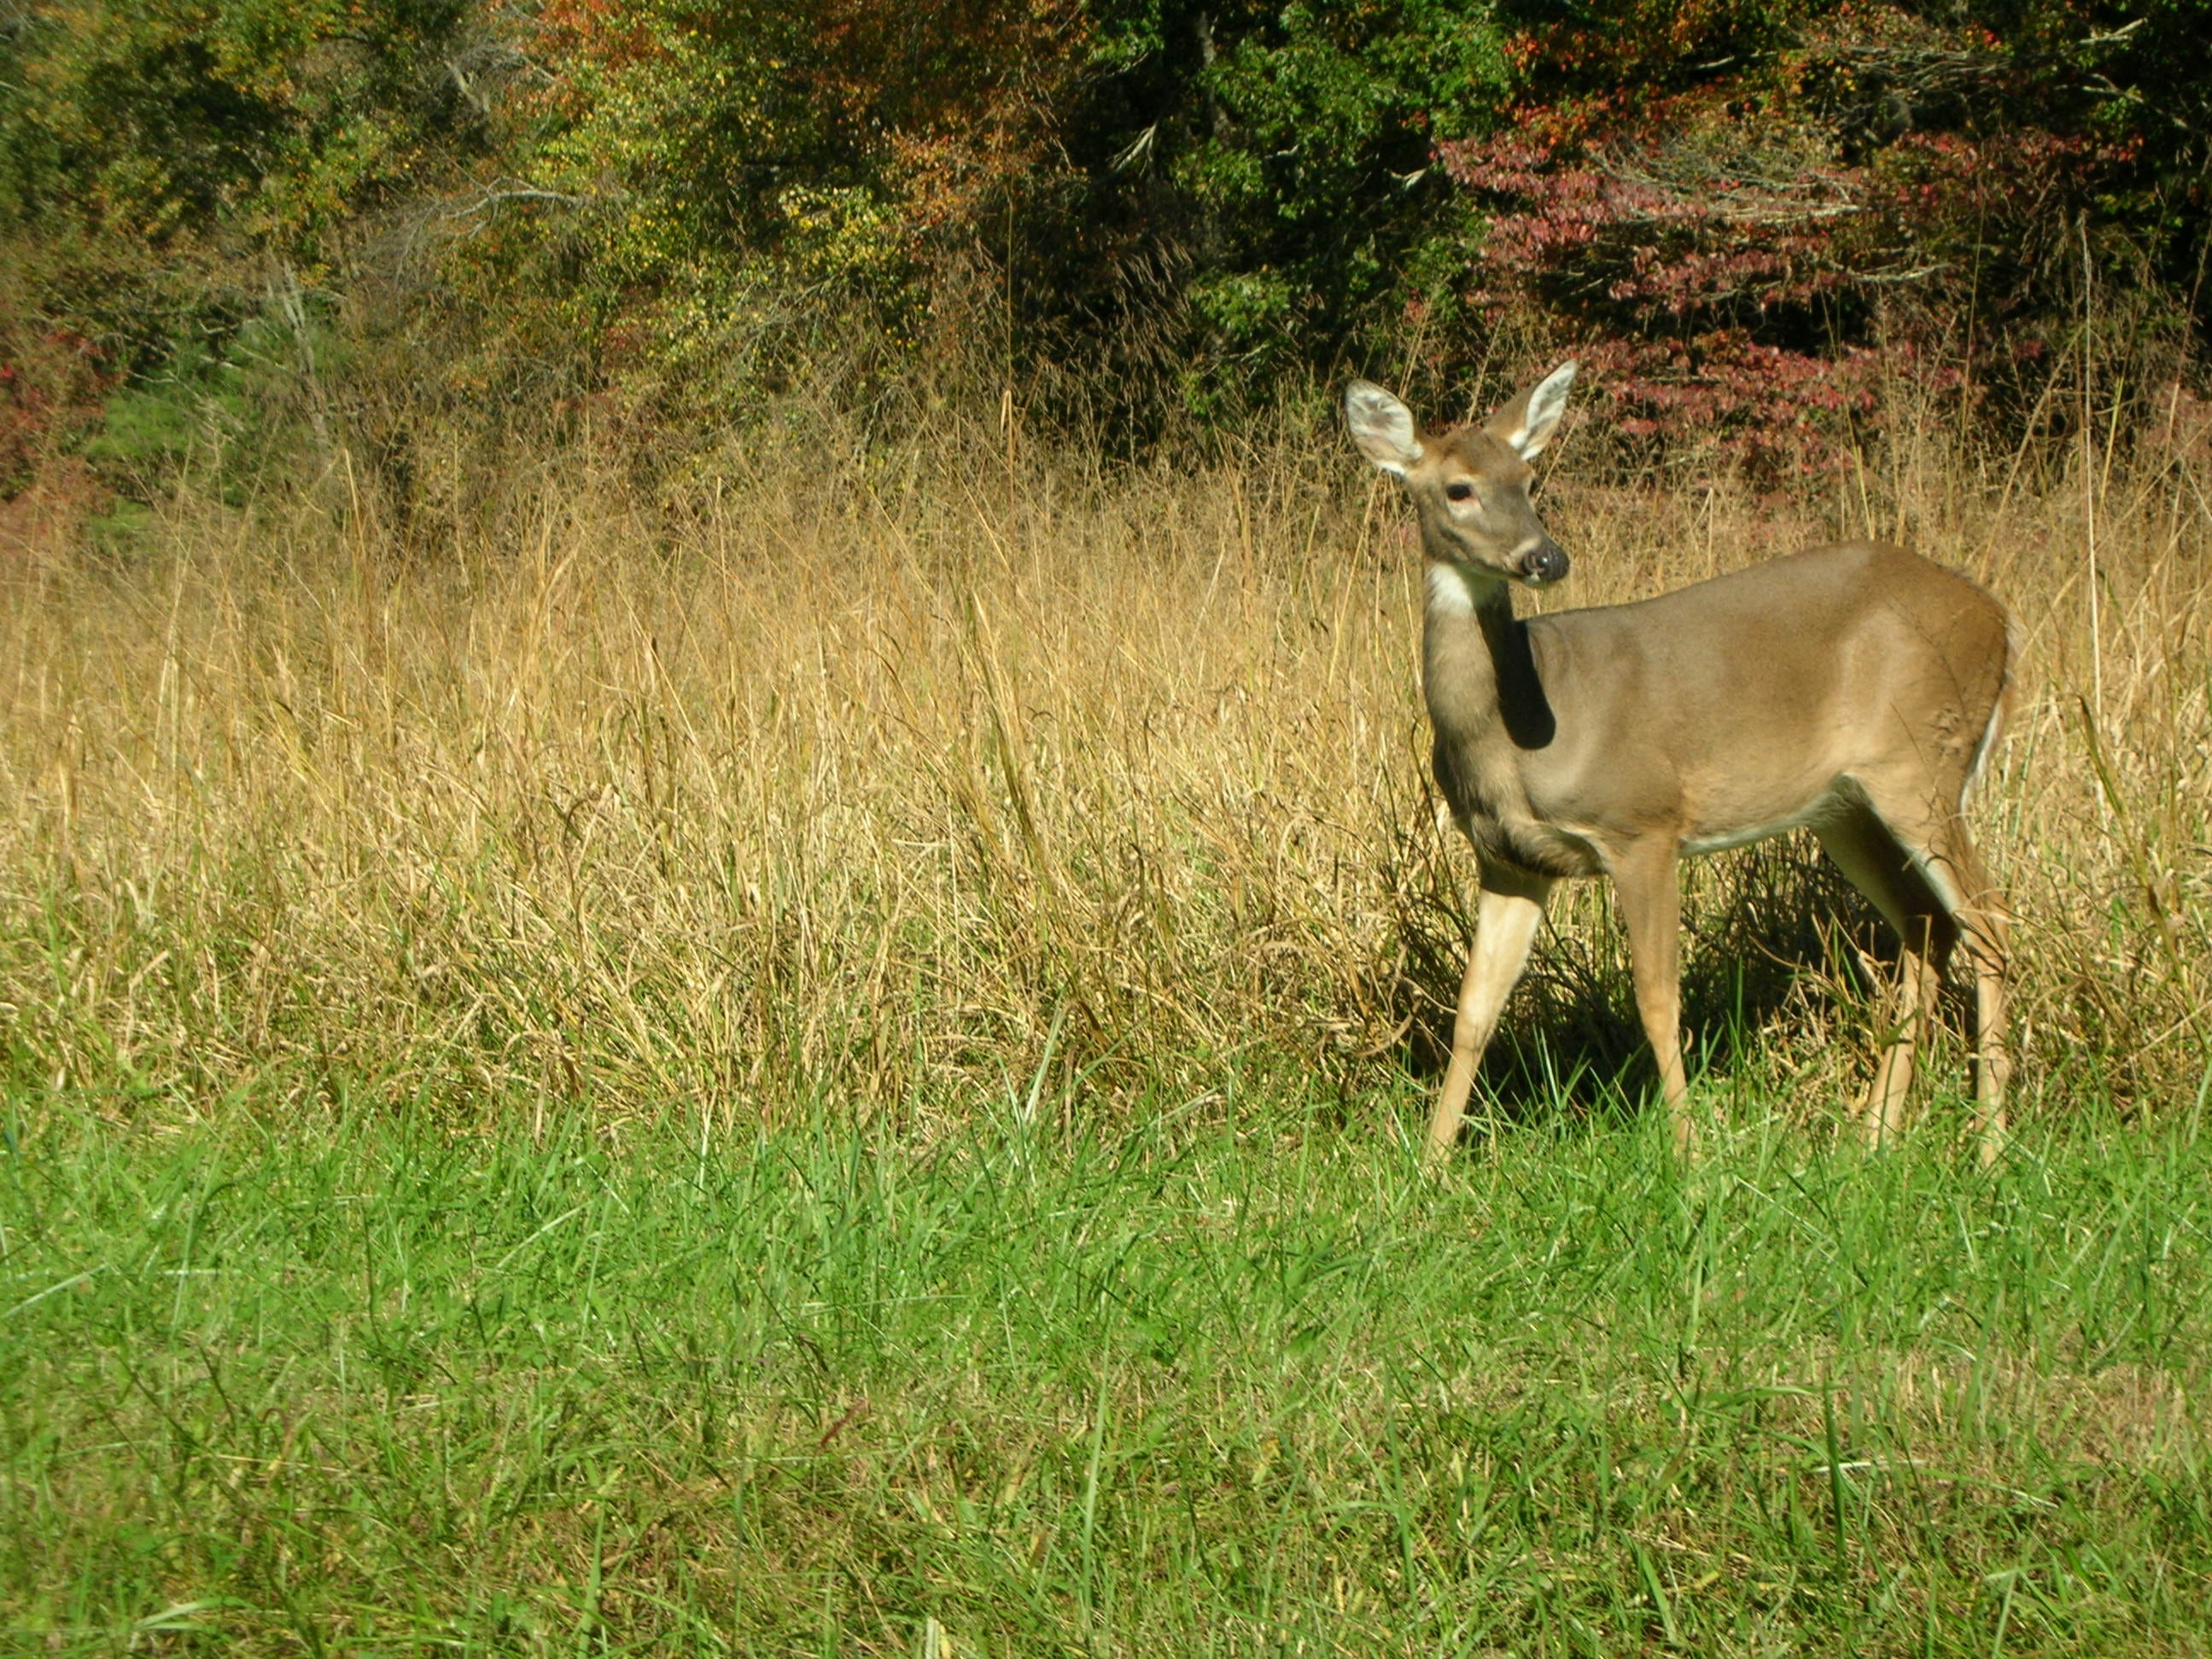 A deer slowly picks its way across a field at Cades Cove in the Great Smoky Mountains National Park. Cades Cove is regarded as the most visited part of the country's most visited national Park. October 2005